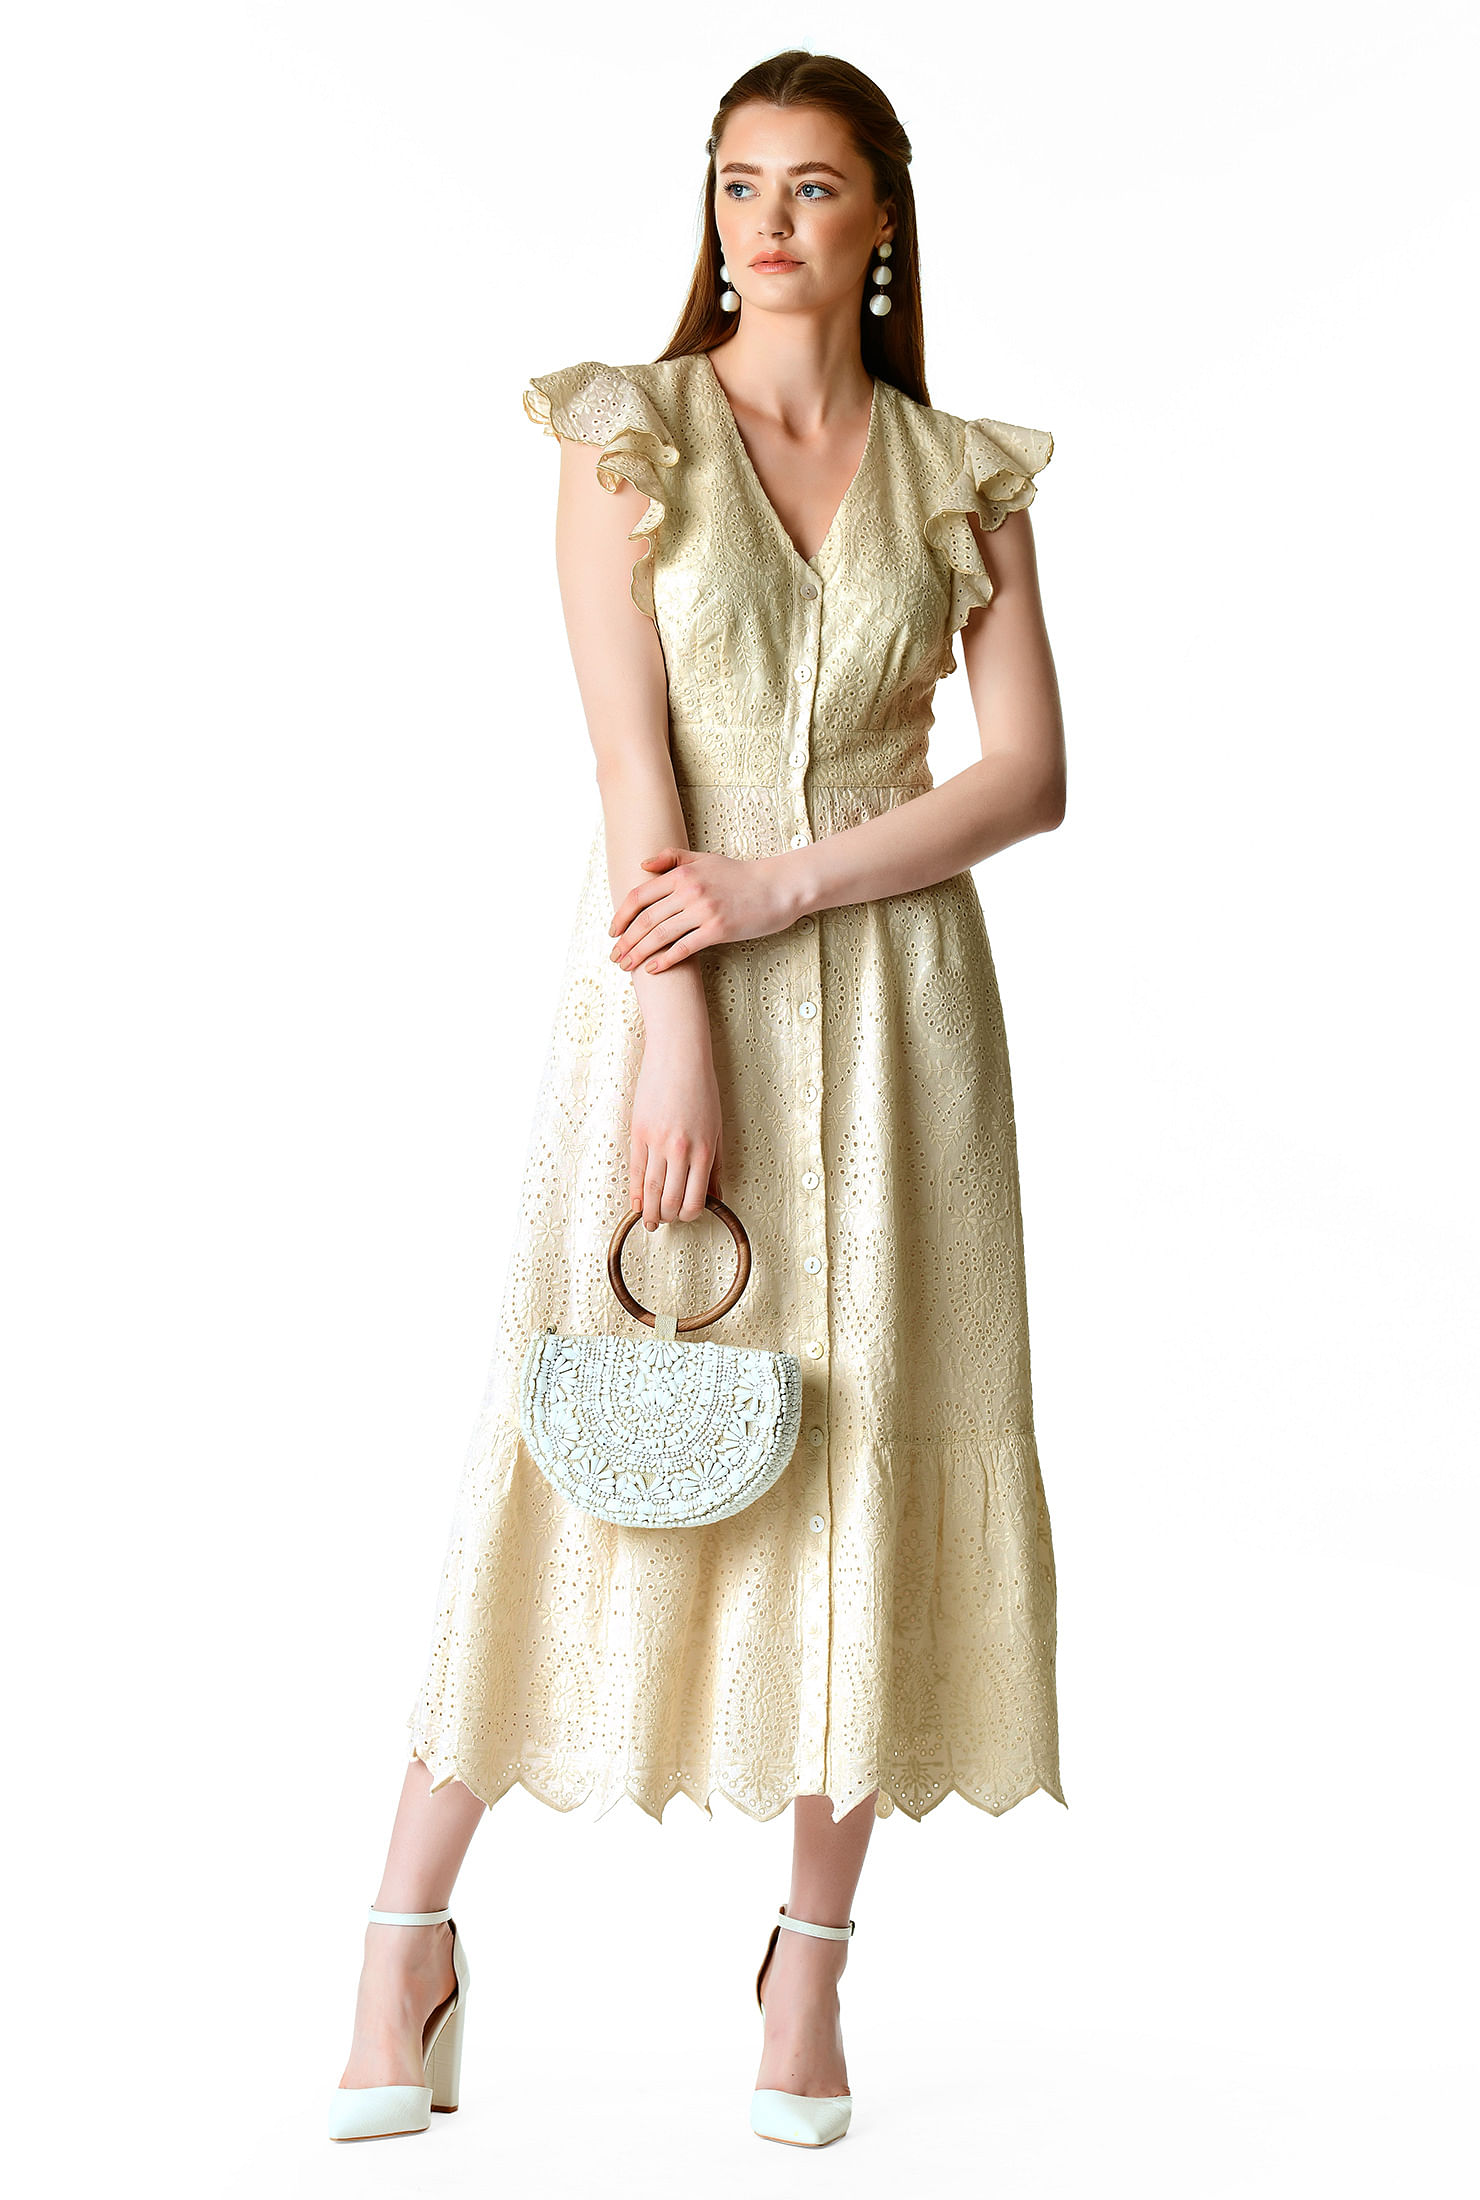 500 Vintage Style Dresses for Sale | Vintage Inspired Dresses Scallop trim cotton eyelet shirtdress $99.95 AT vintagedancer.com